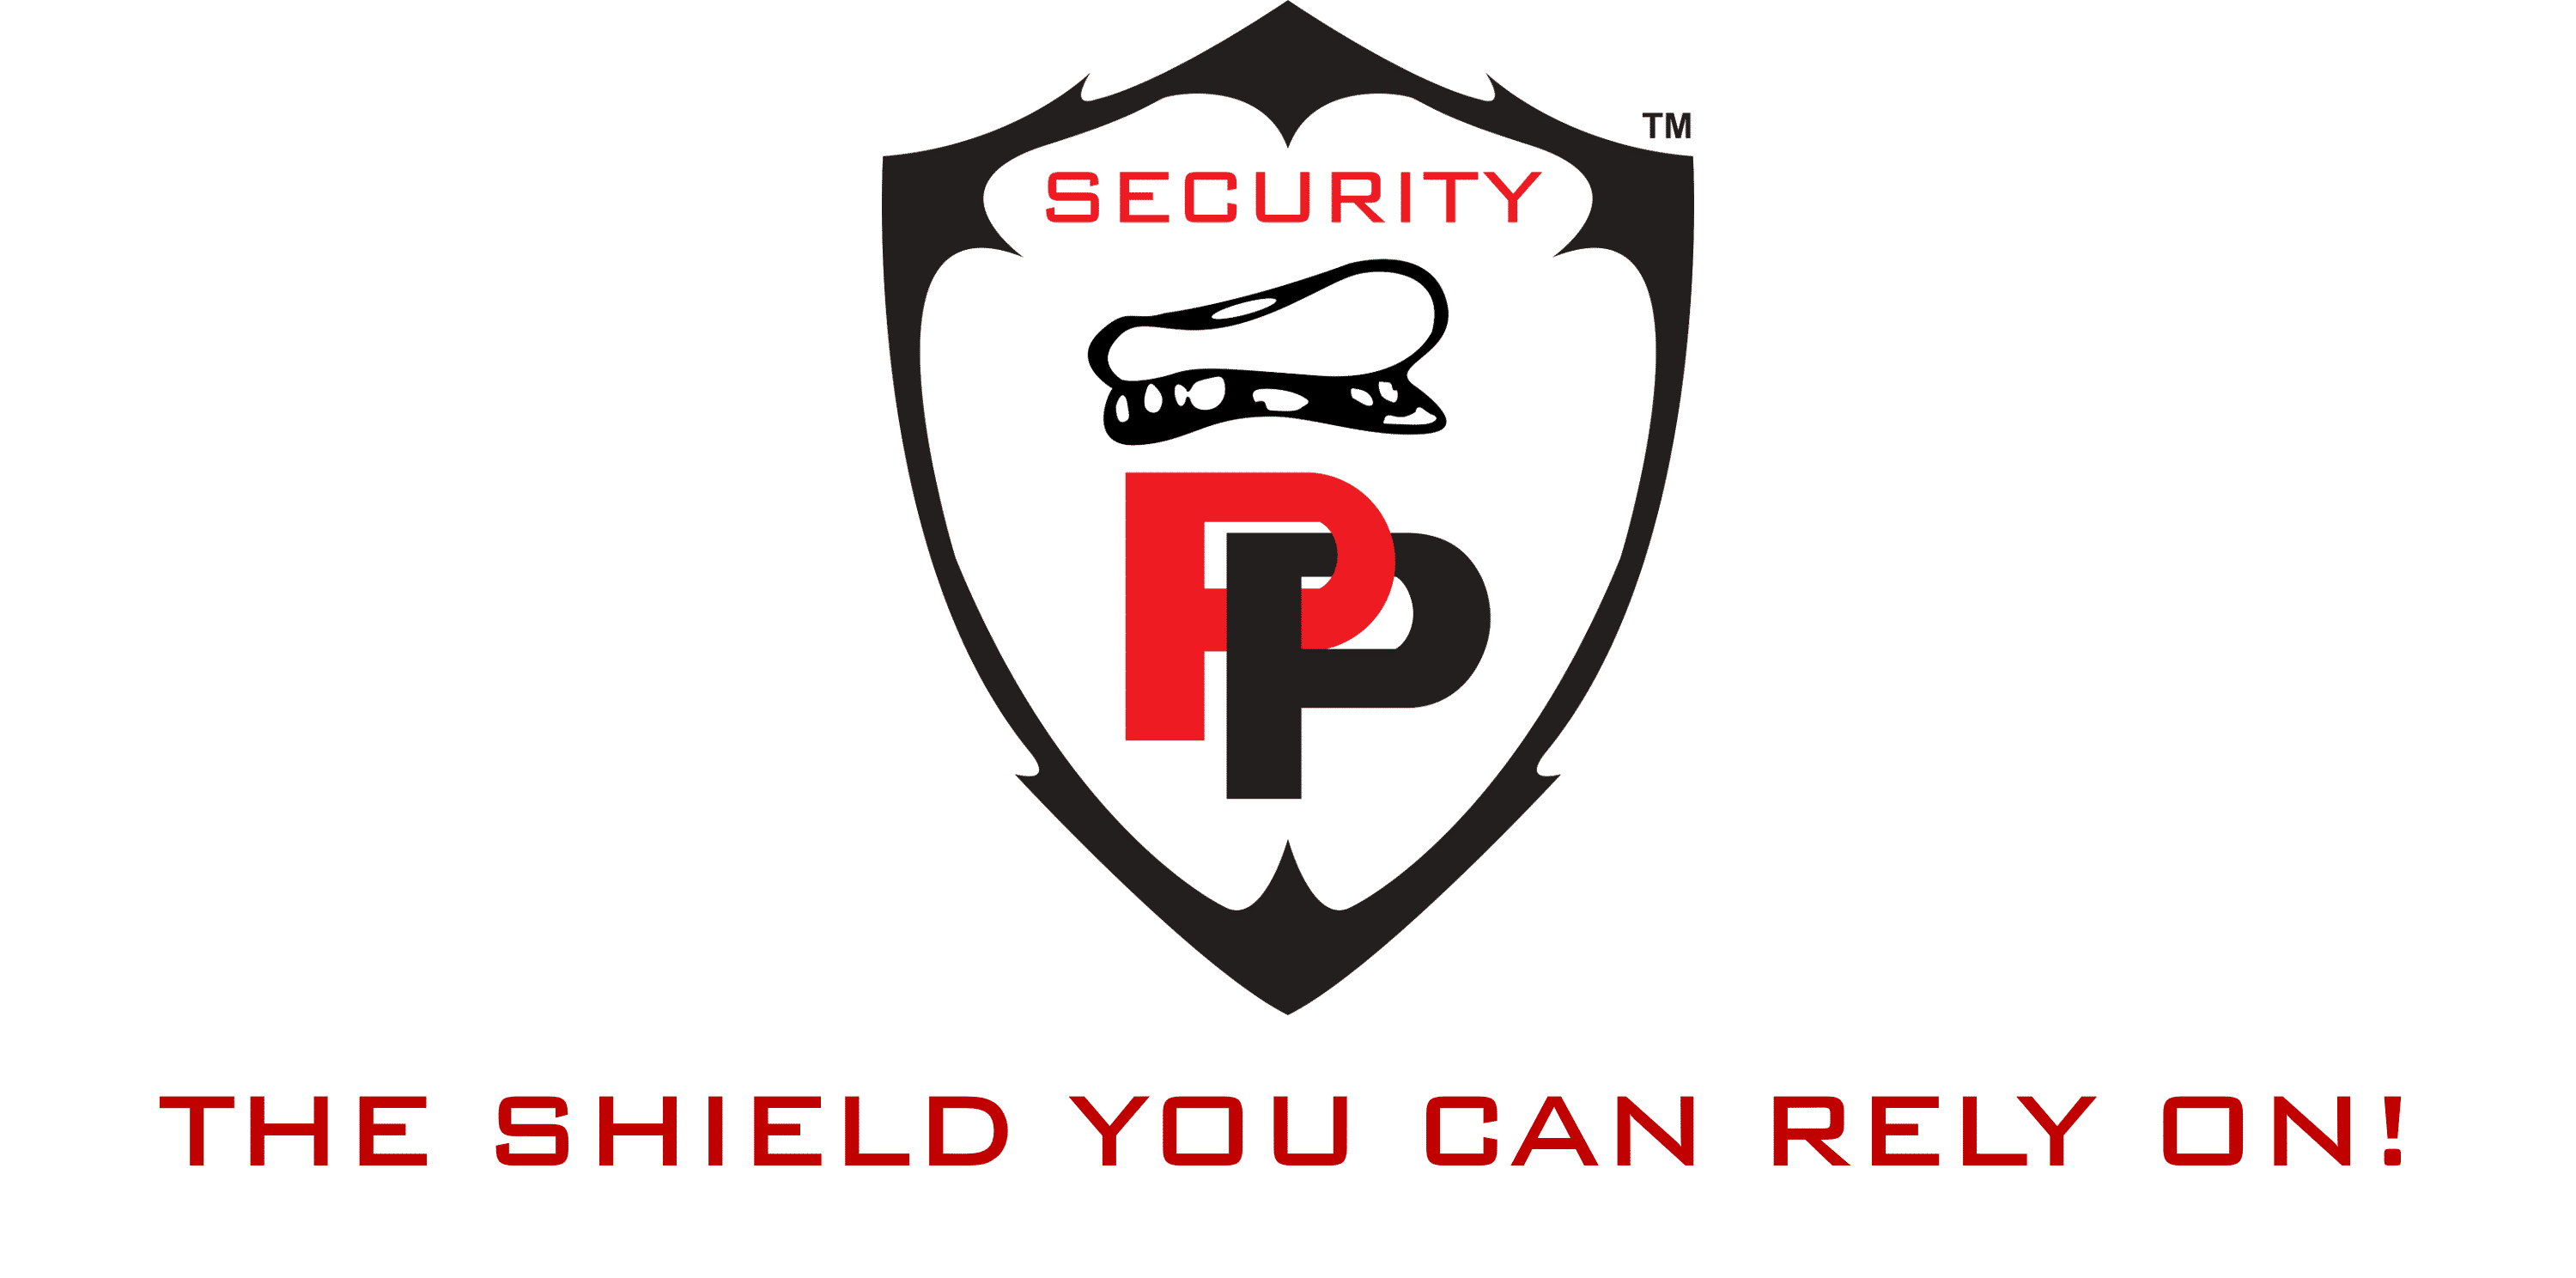 trusted security company